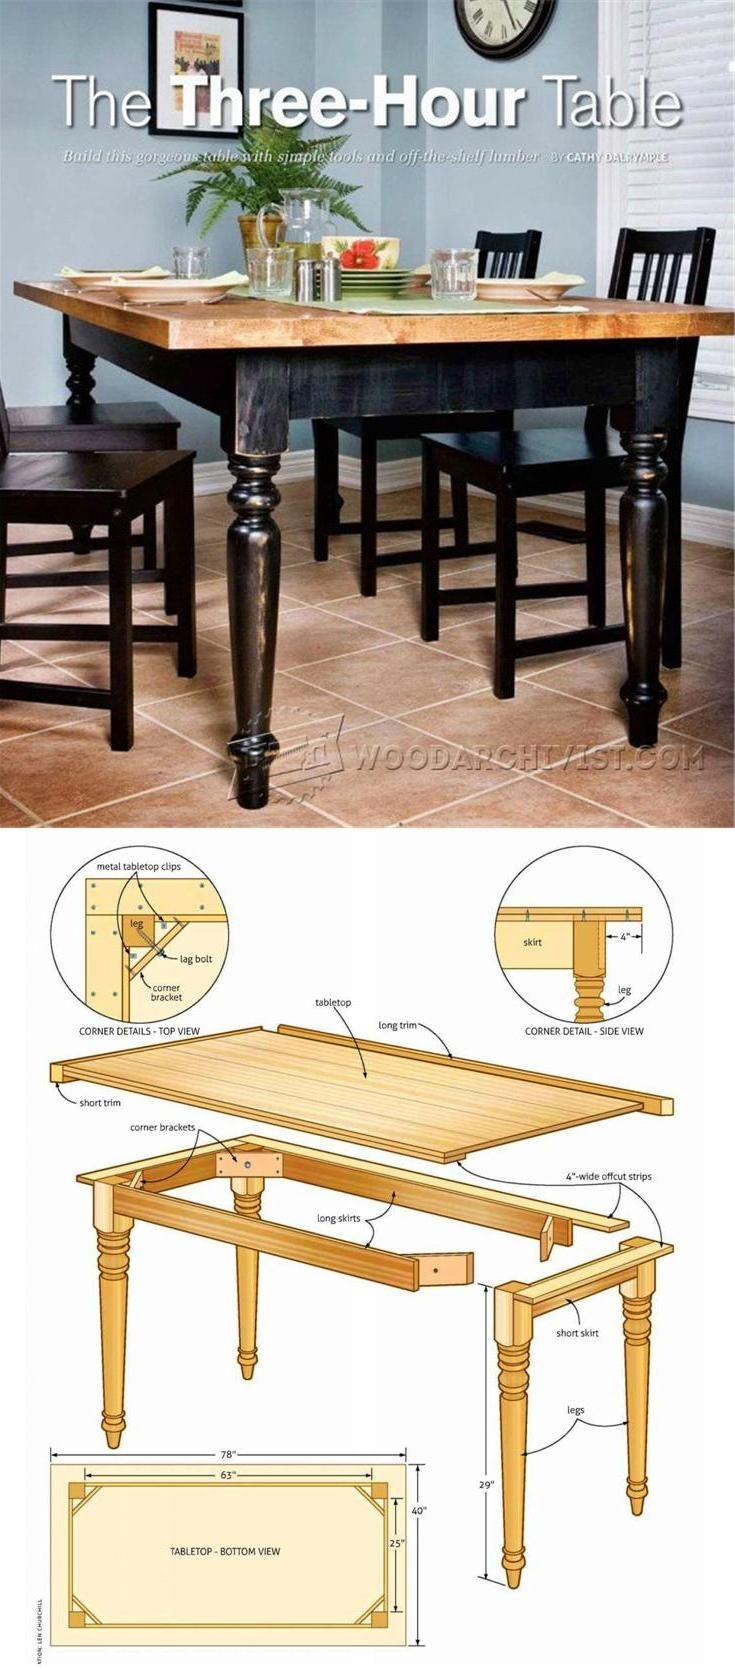 Easy Table Plans - Furniture Plans and Projects | WoodArchivist.com